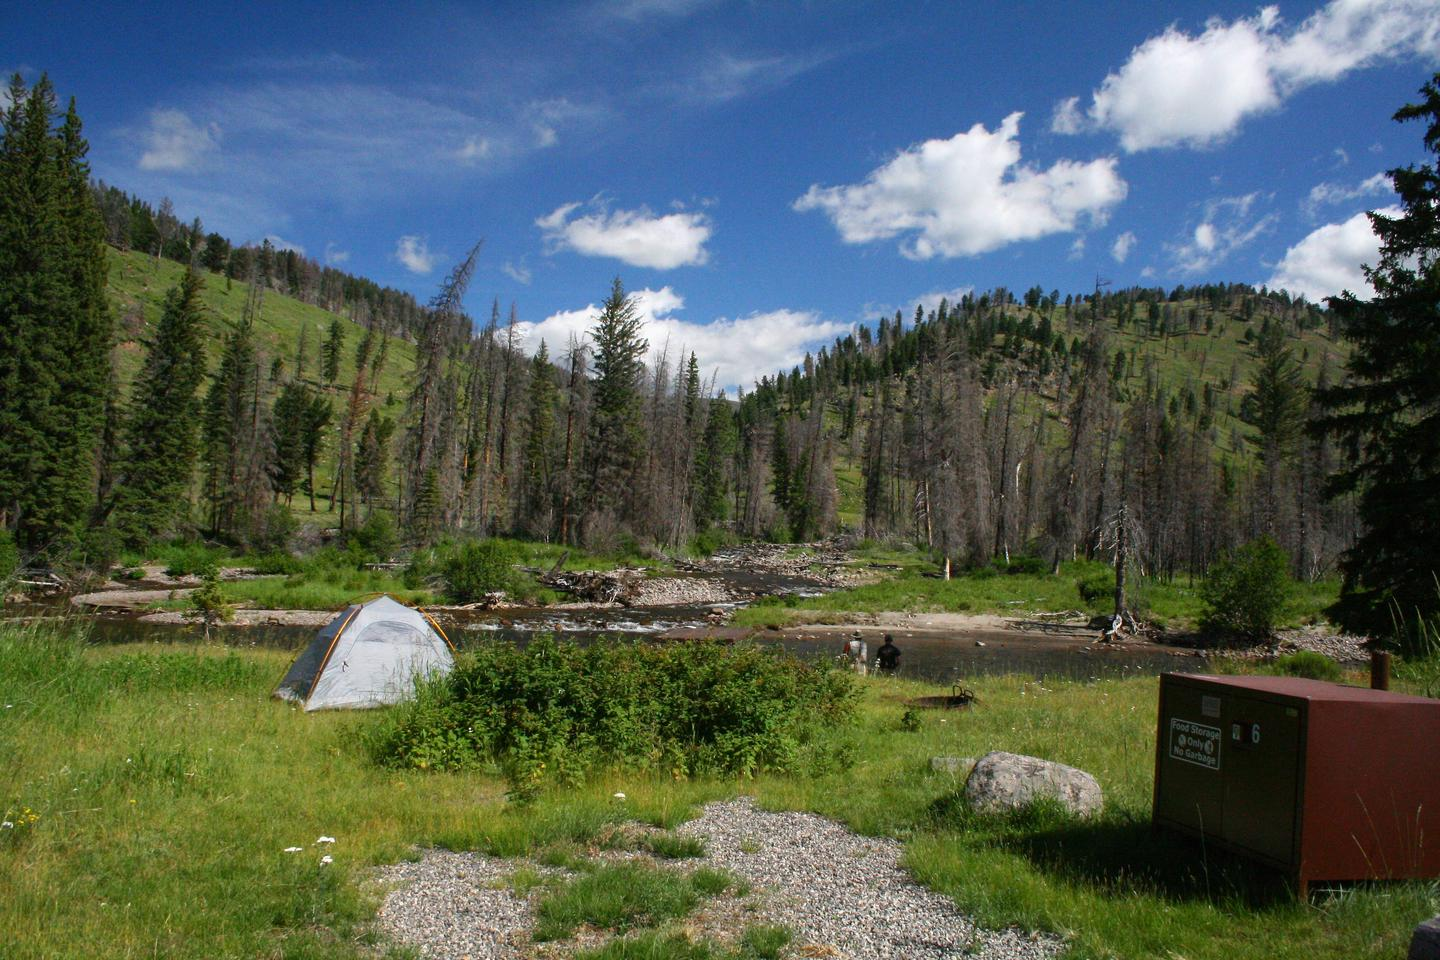 Slough Creek Campground site #6..Slough Creek Campground site #6